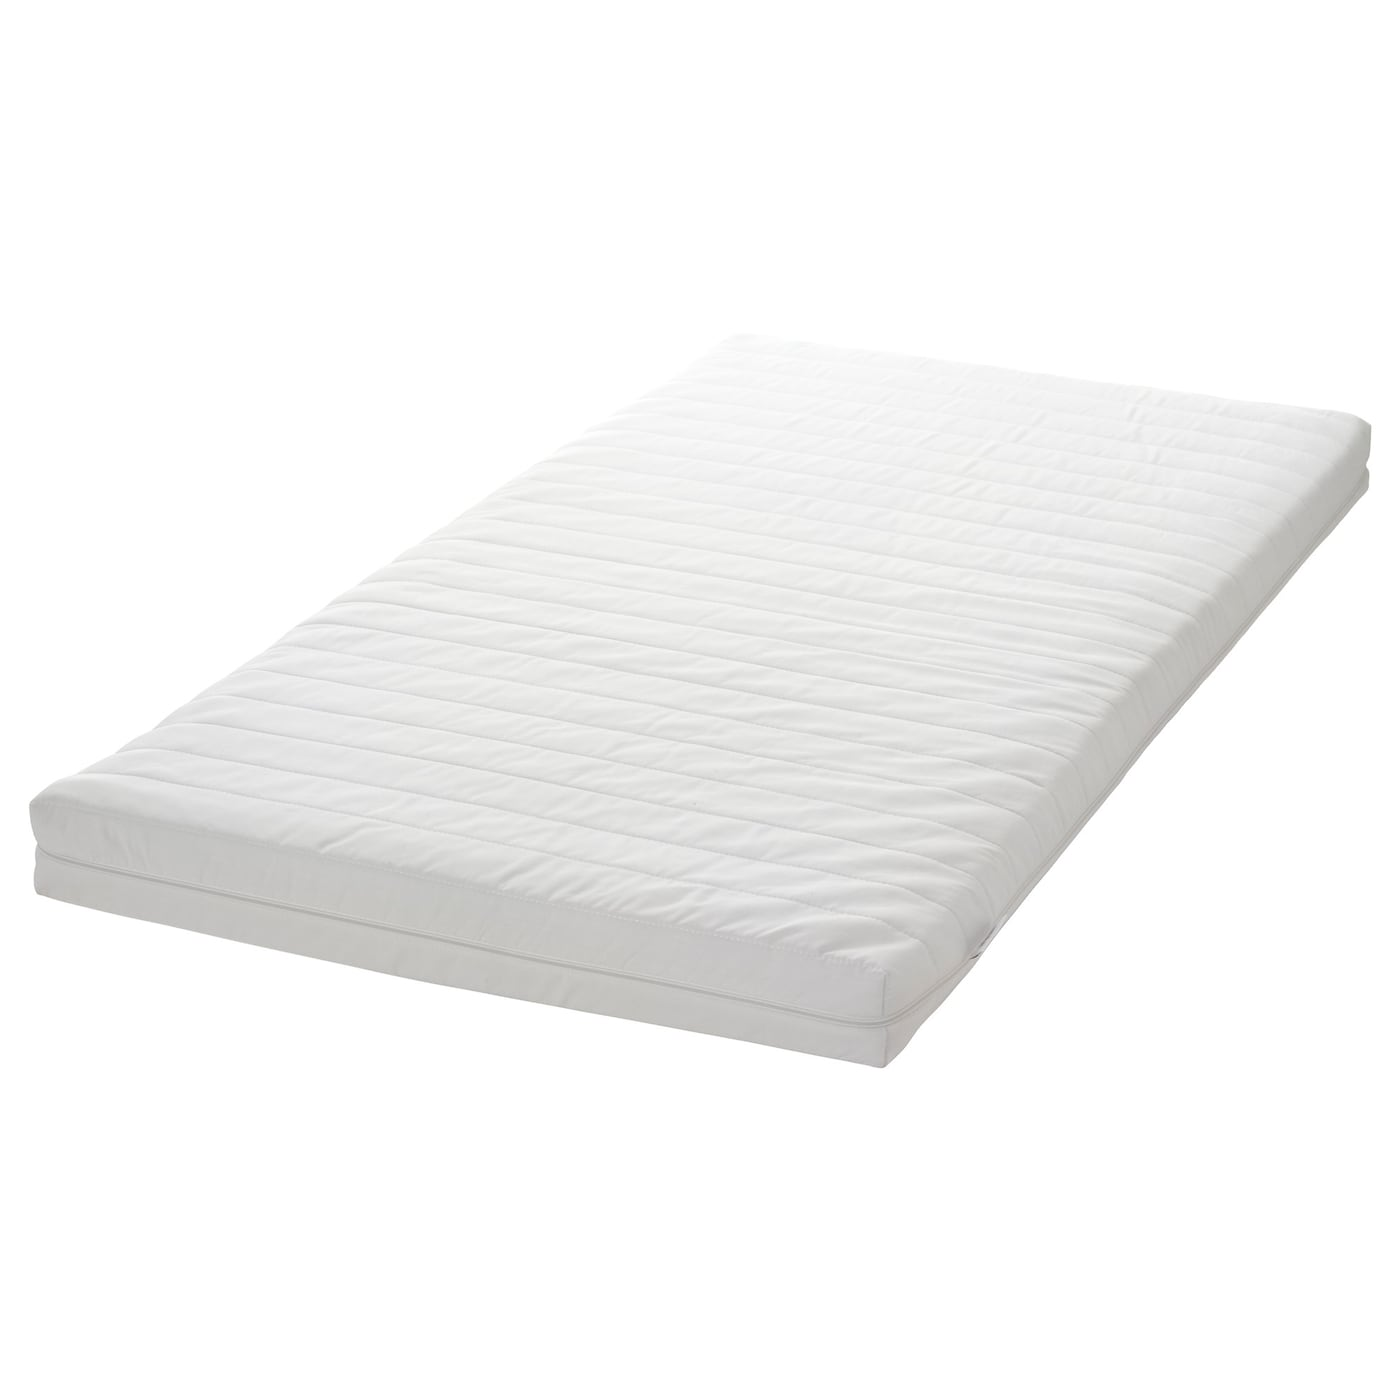 VYSSA SNOSA Mattress for junior bed White 70x160 cm - IKEA